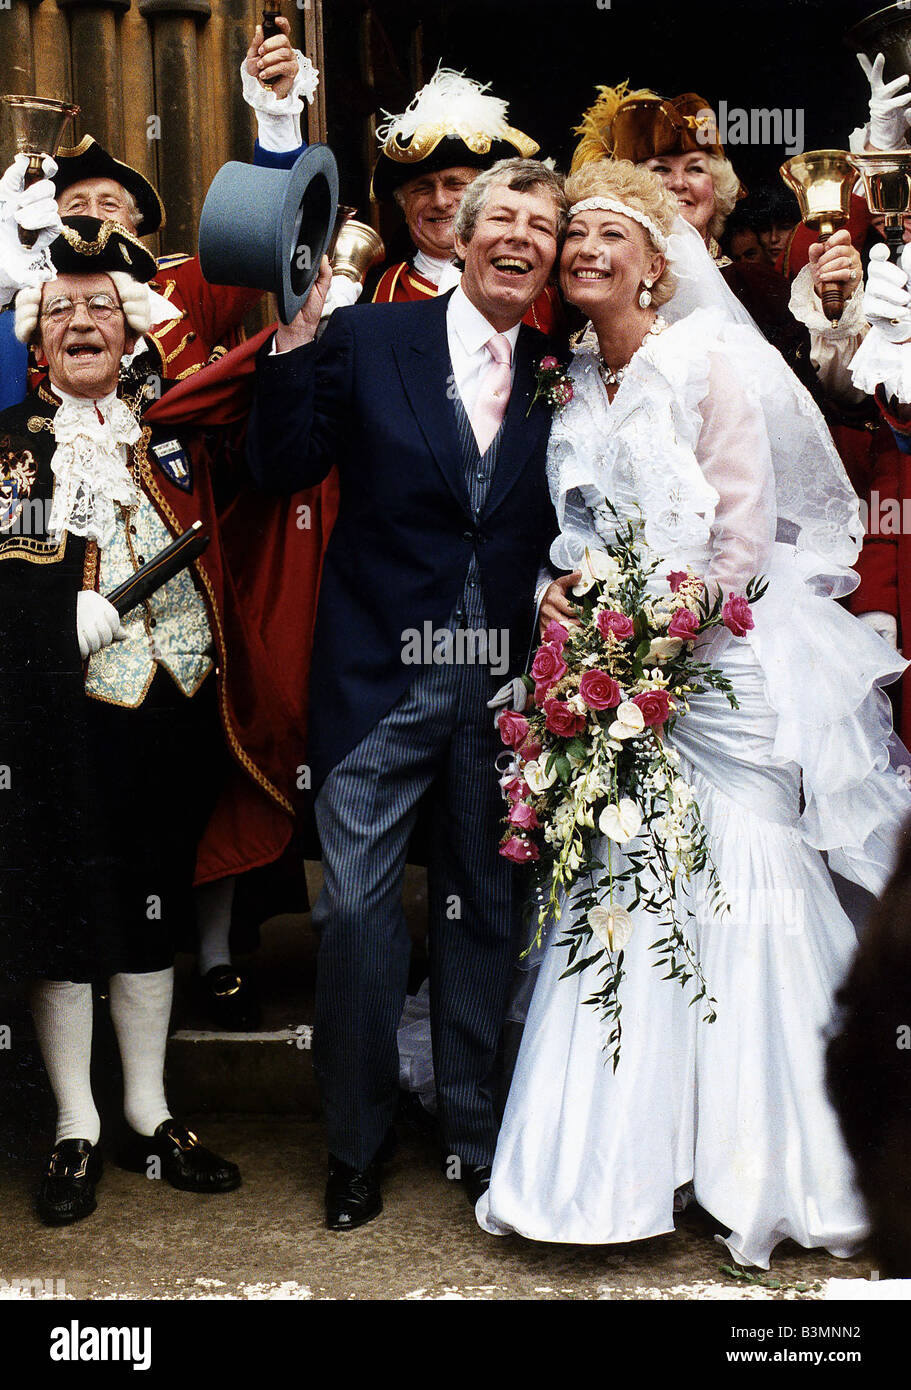 Son of Leonid Parfenov played the wedding for the second time 09/08/2015 96